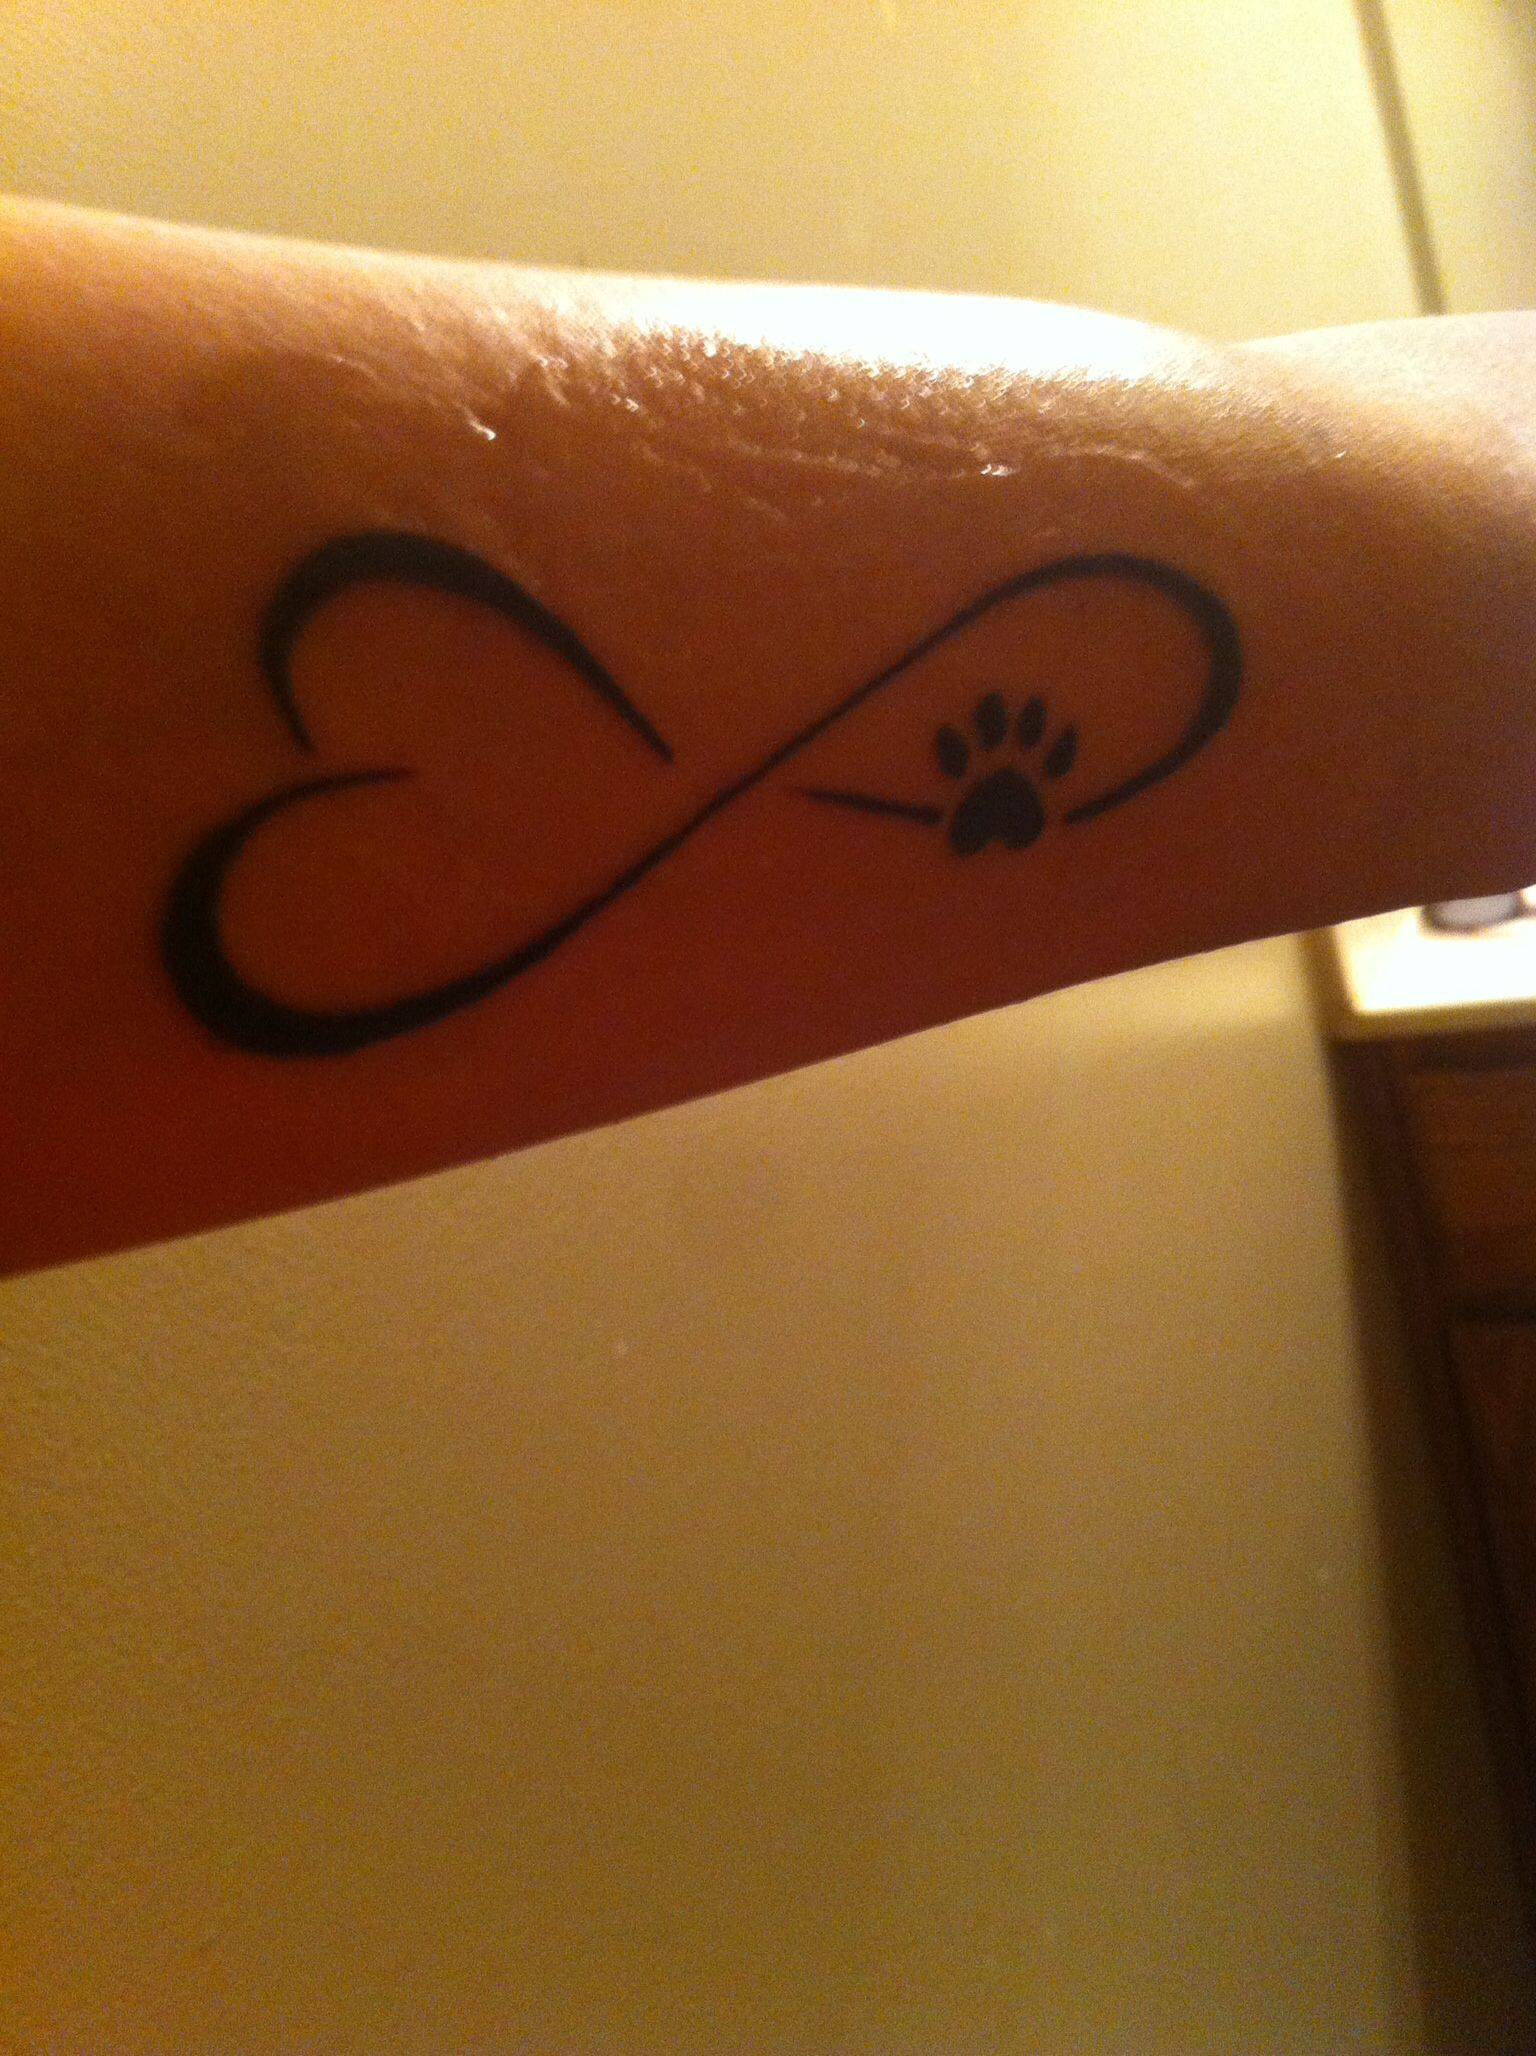 My first tattoo infinity sign with heart and dog paw the my first tattoo infinity sign with heart and dog paw the original biocorpaavc